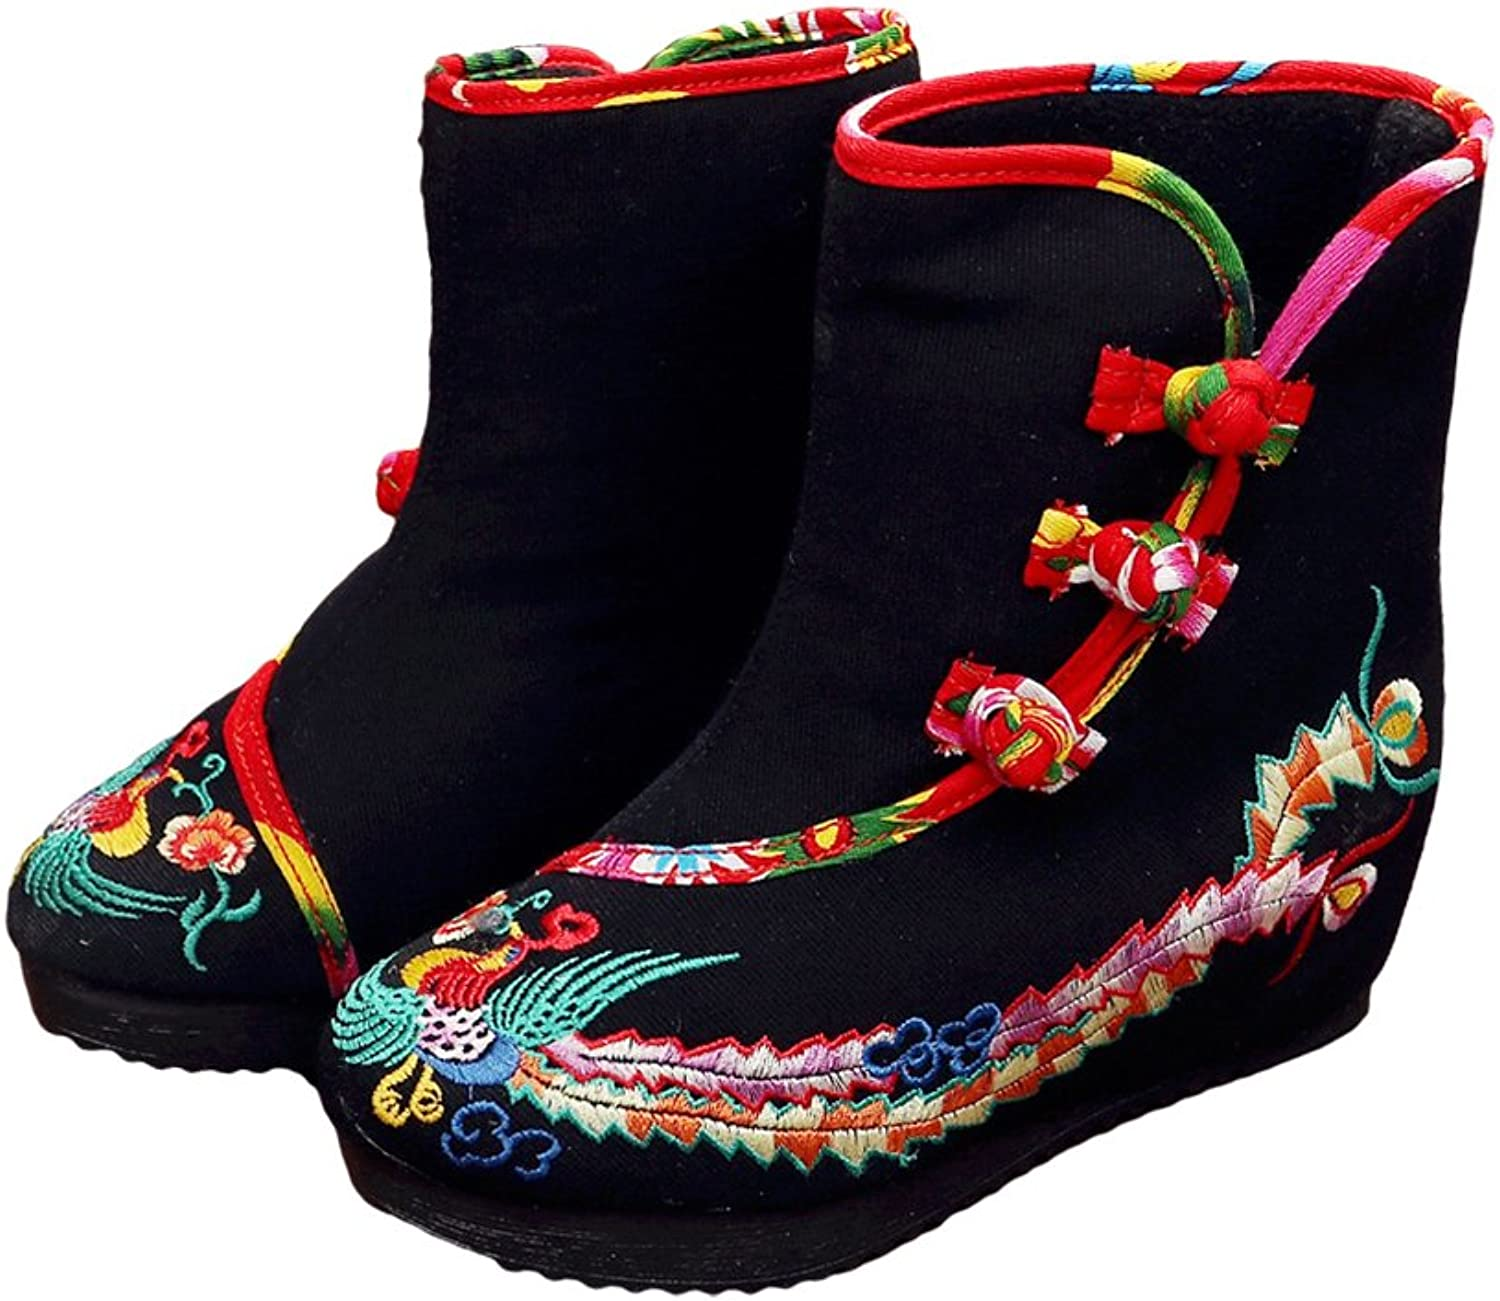 AvaCostume Womens Phoenix Embroidery Wedge Heel Platform Ankle Booties